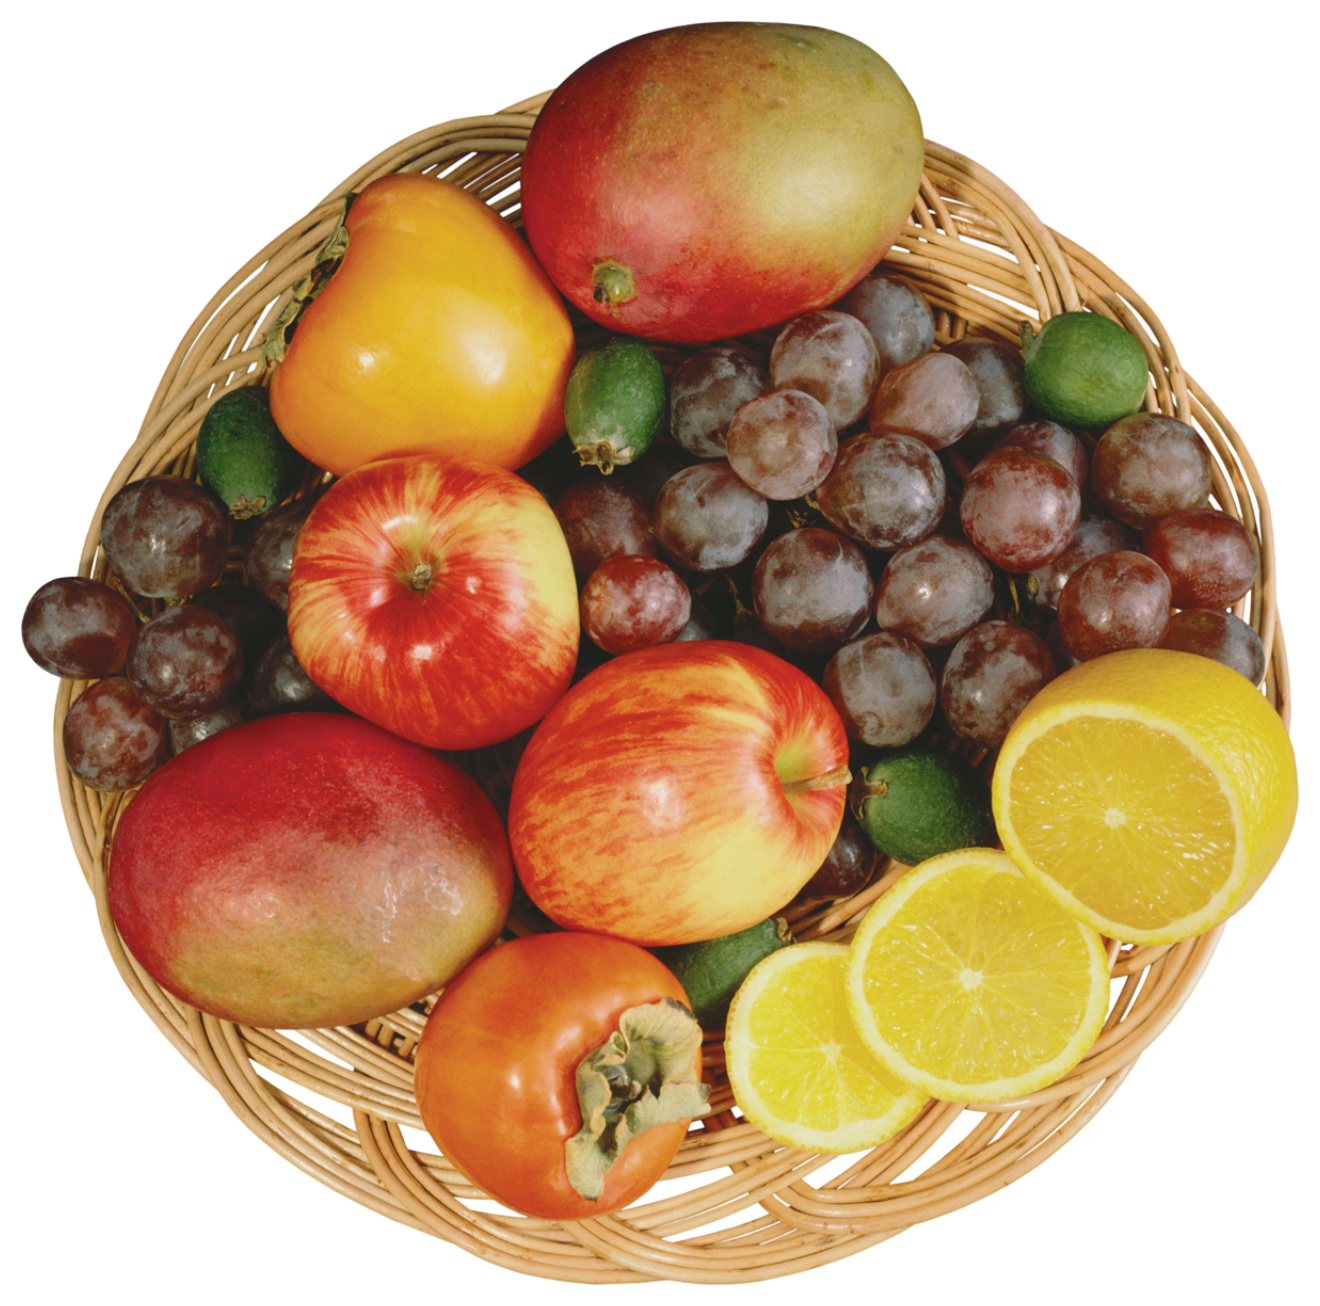 Clipart fruit fruit cup. Mixed fruits in wicker